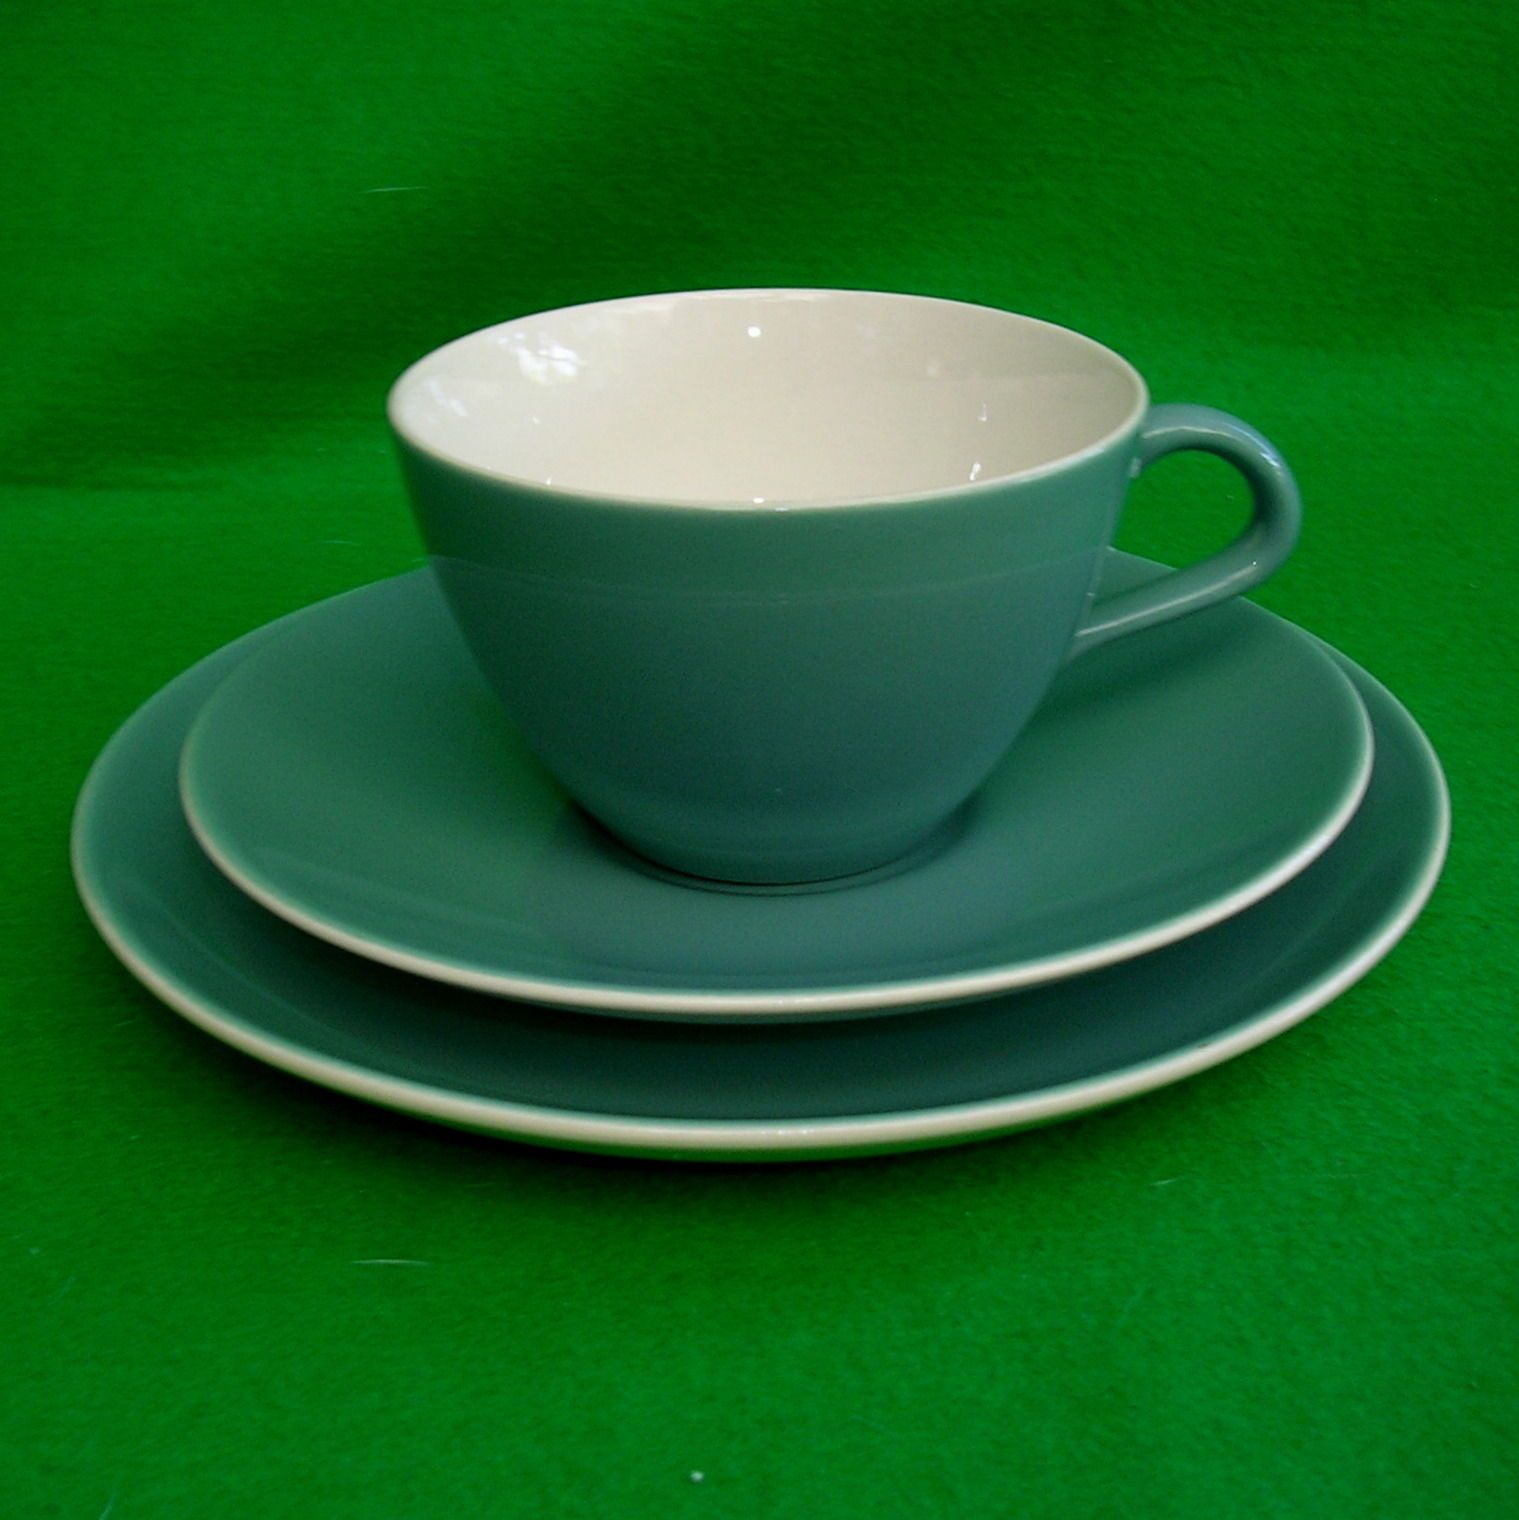 Poole Pottery Blue Moon Teacup Saucer and side plate Trio Vintage Pre 1968   eBay